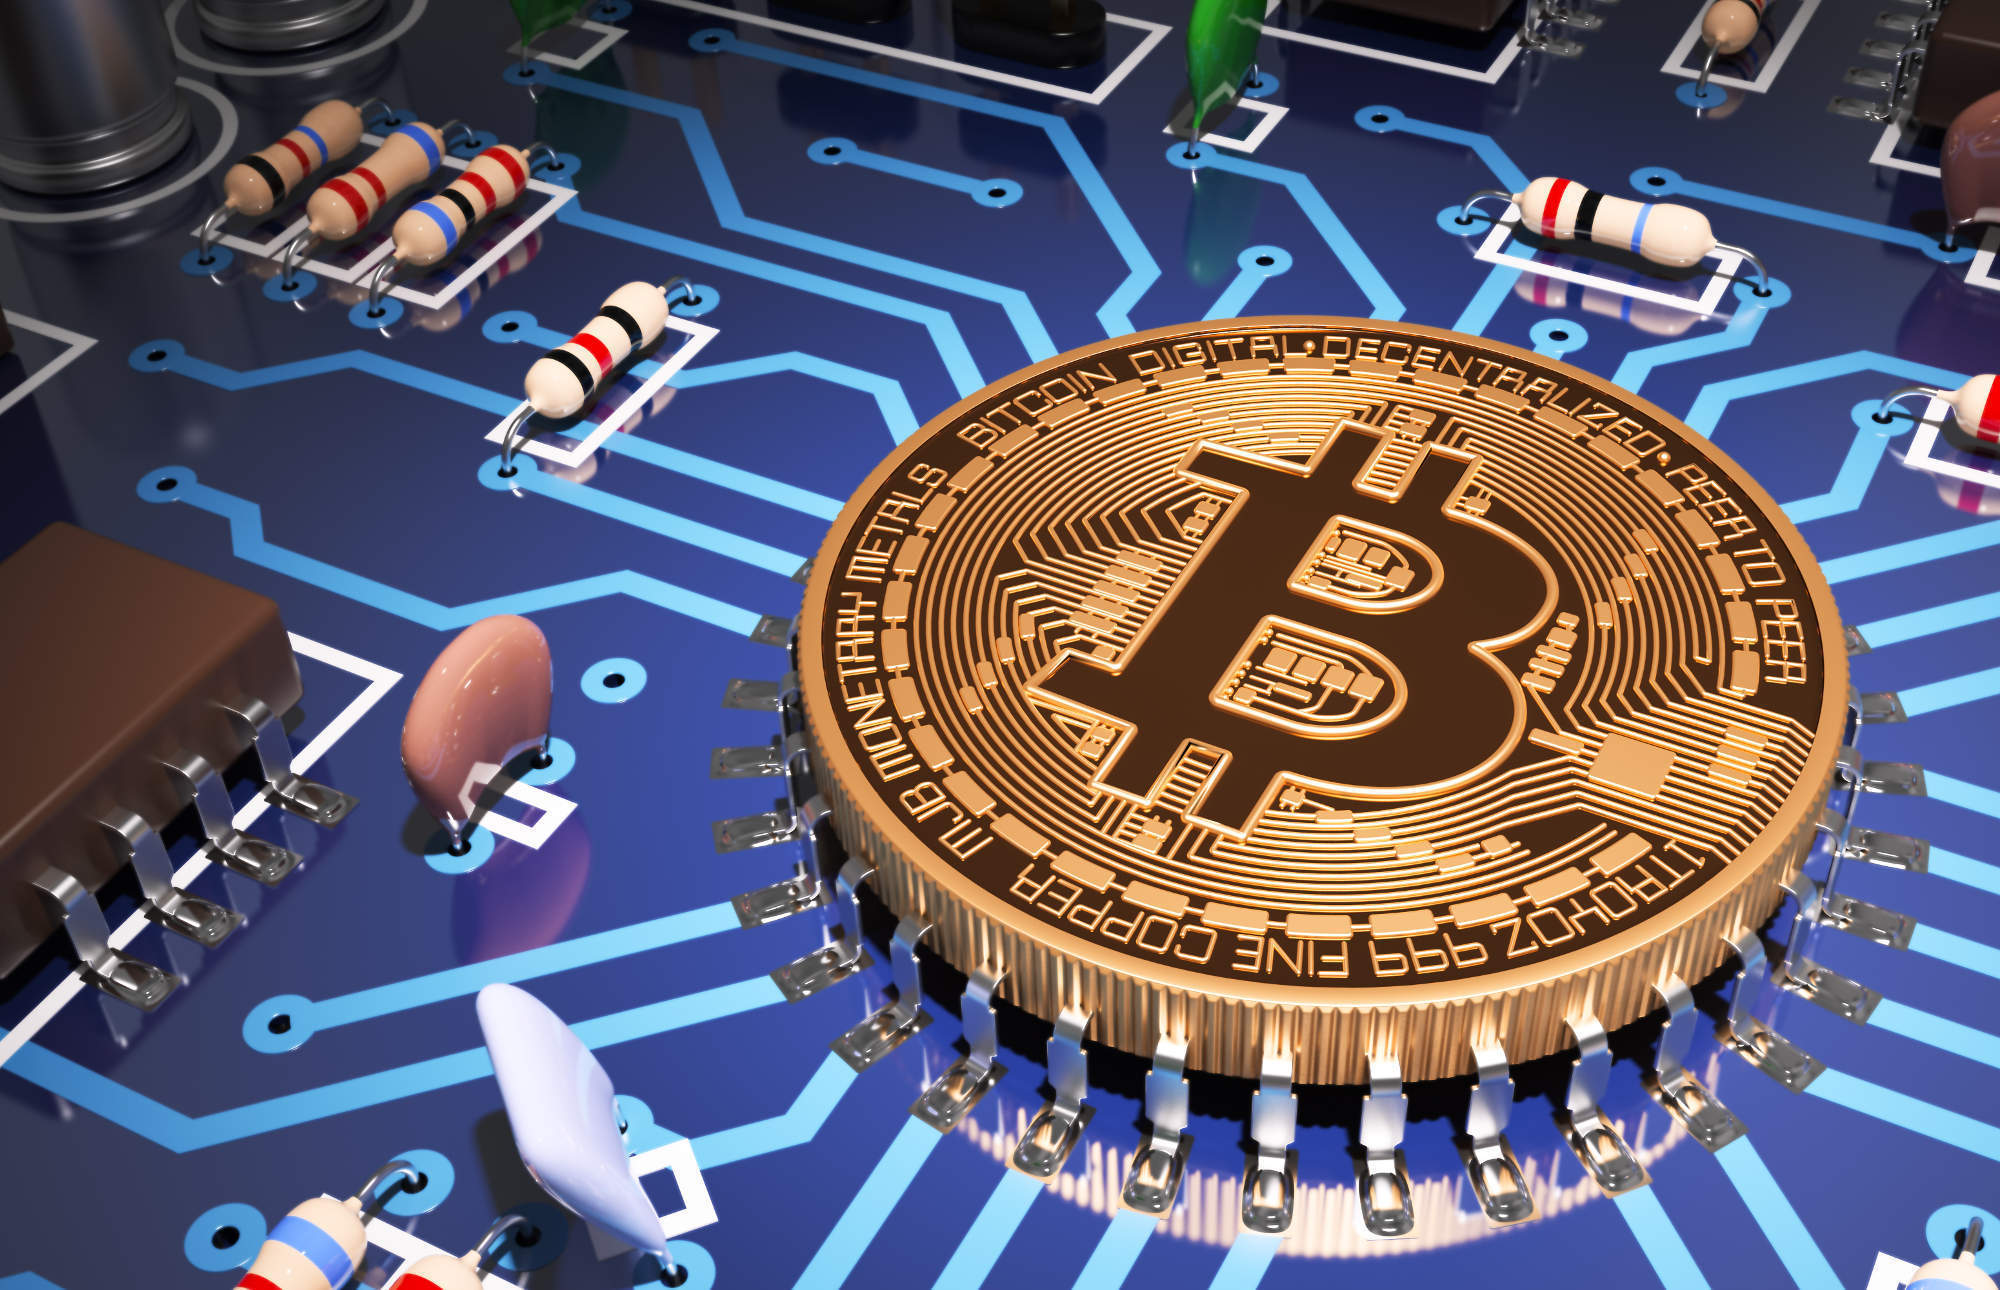 Could bitcoin's value really triple in 2017?